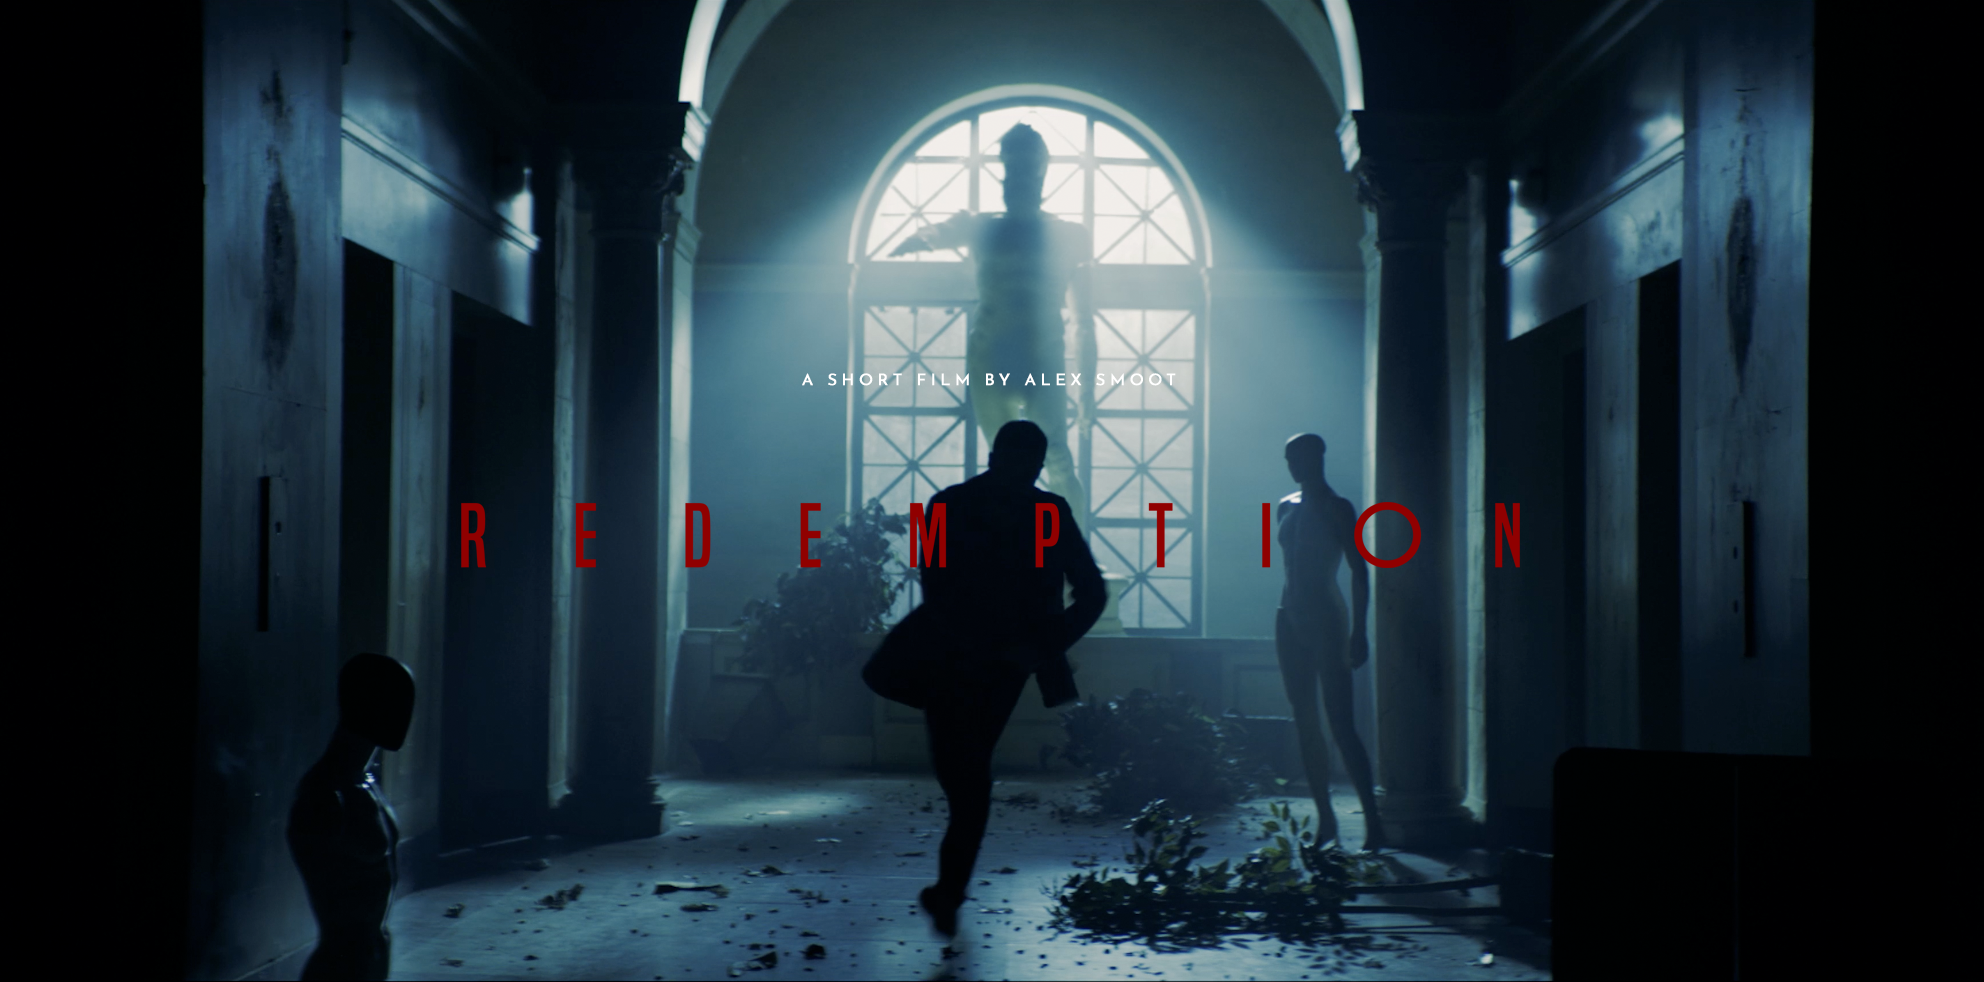 Redemption - A Short Film by Alex Smoot